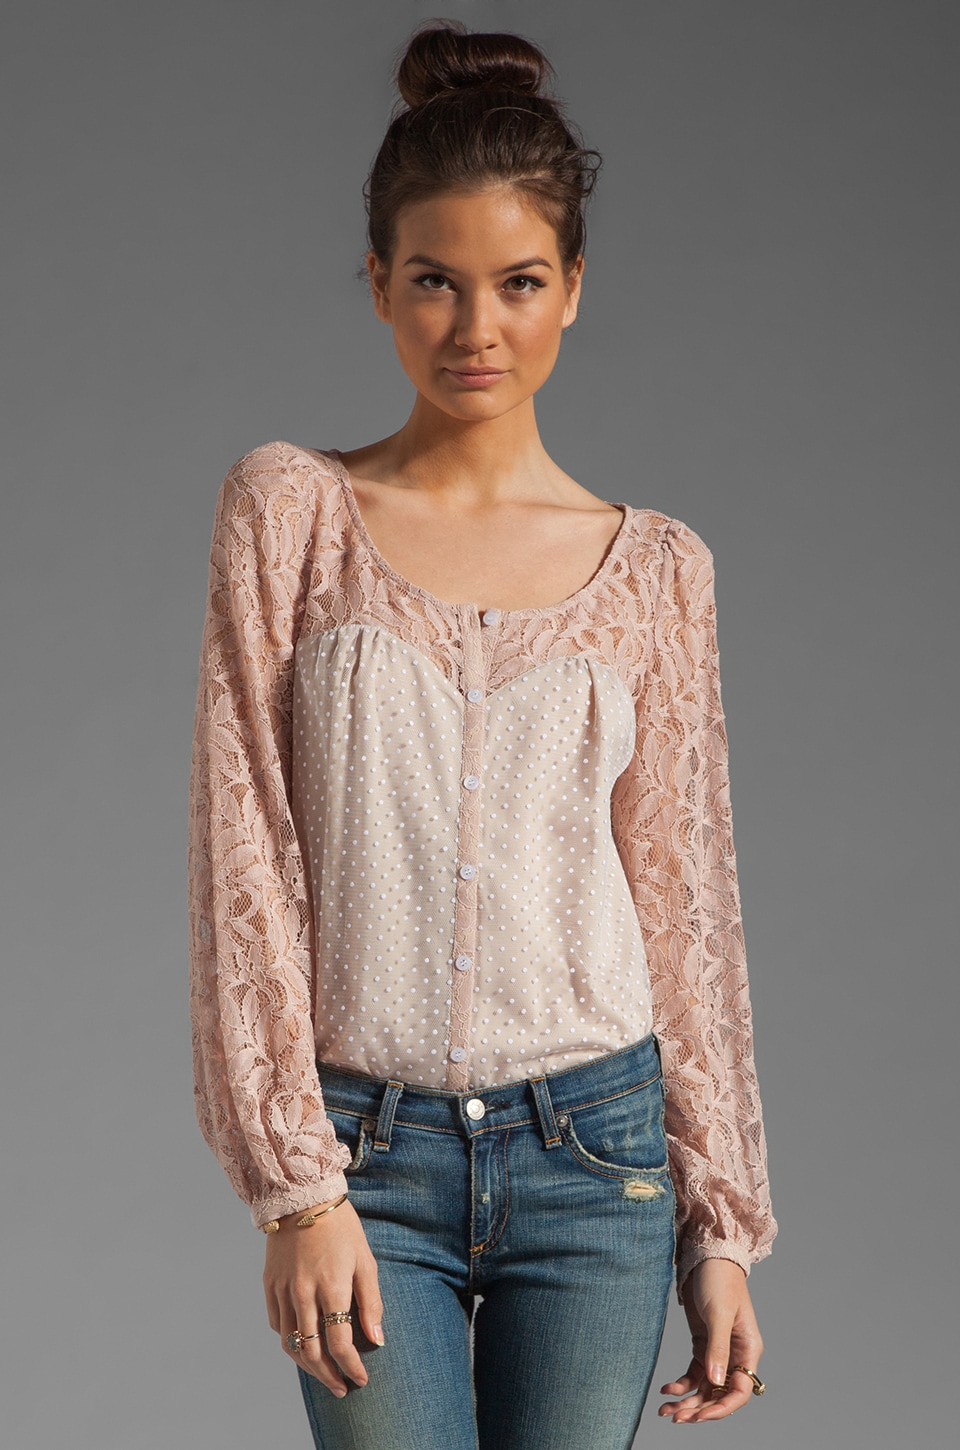 Alice by Temperley Lilianna Blouse in Nude Mix